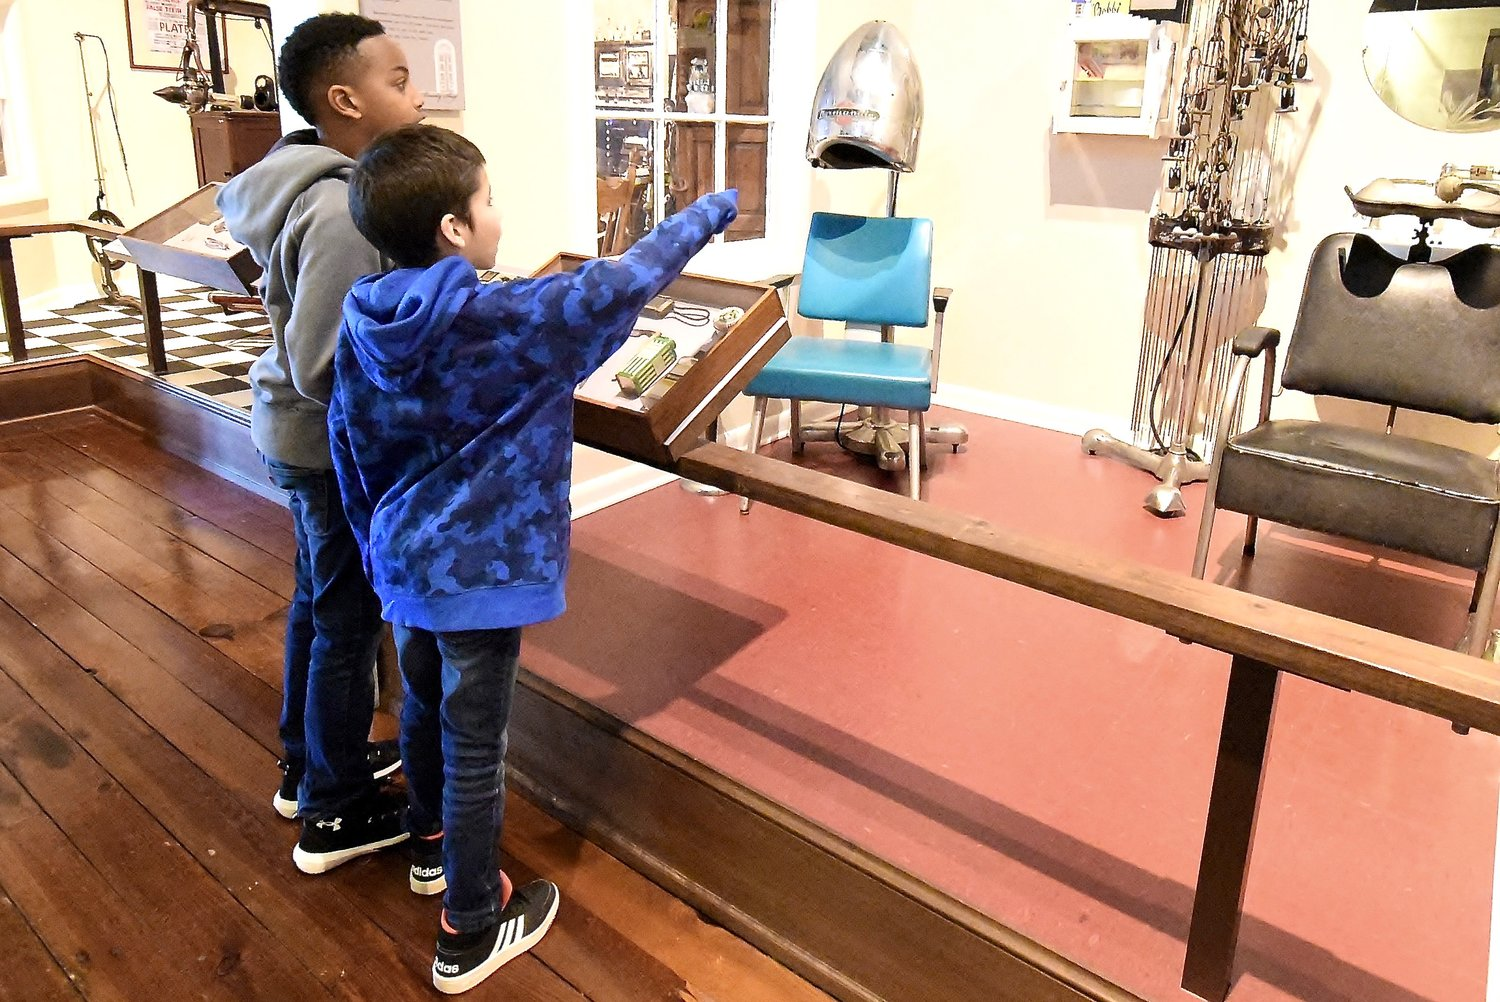 The Bartow History Museum displays many artifacts of times-gone-by, and serves as a popular venue for school field trips.